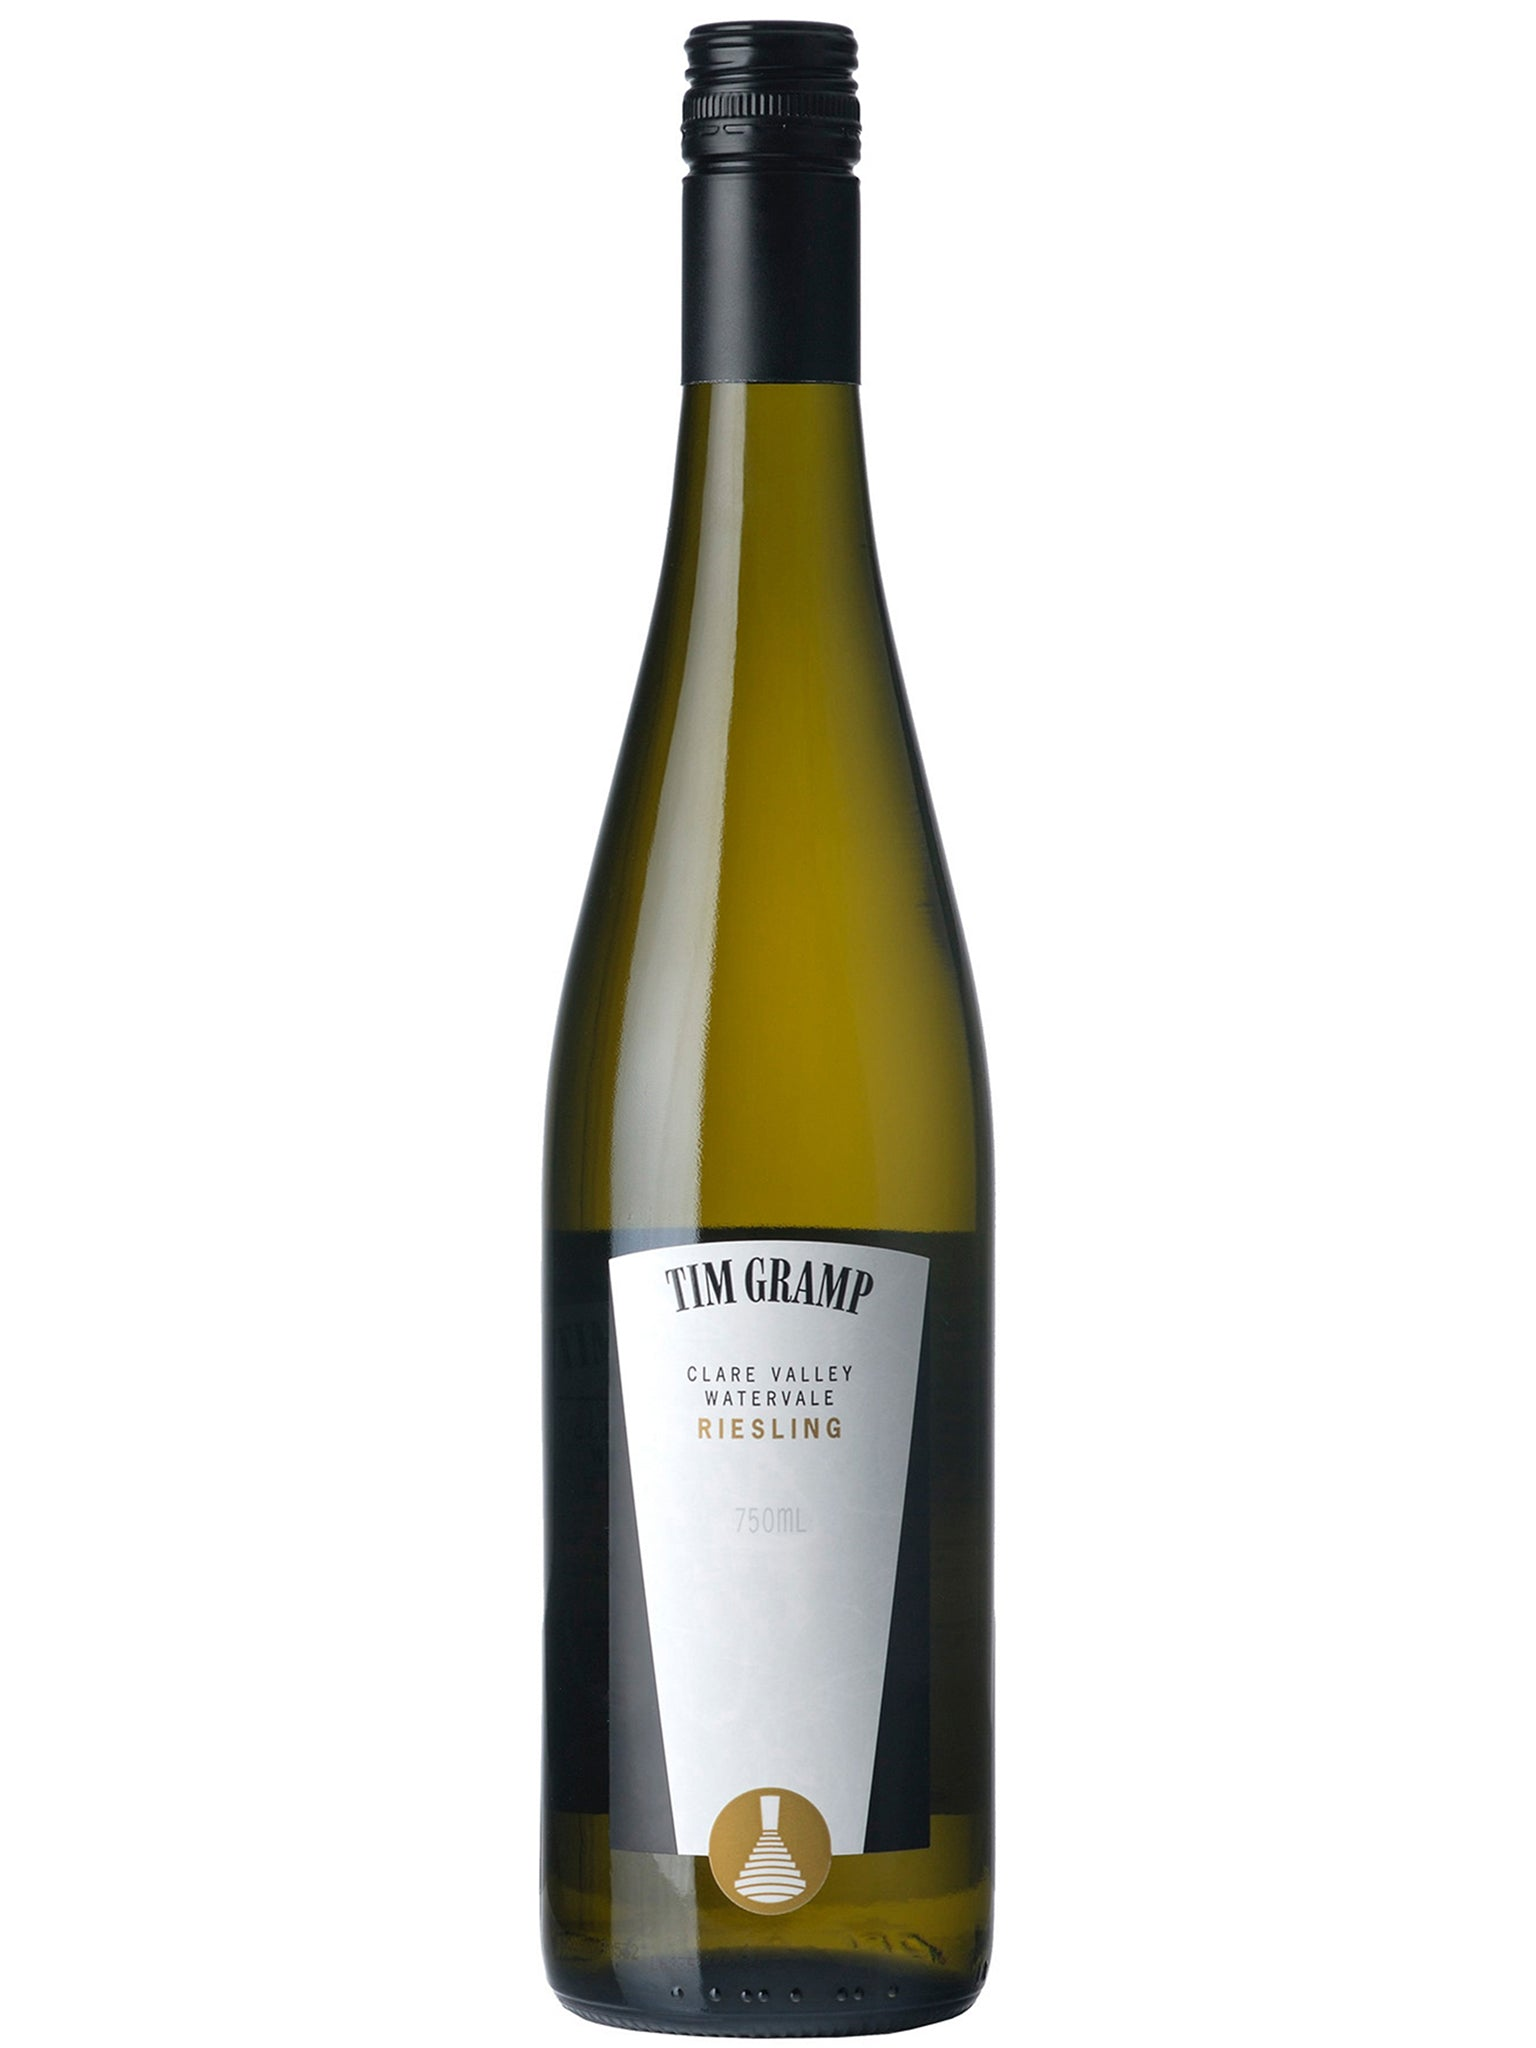 Tim Gramp Watervale Riesling 12pk 2018